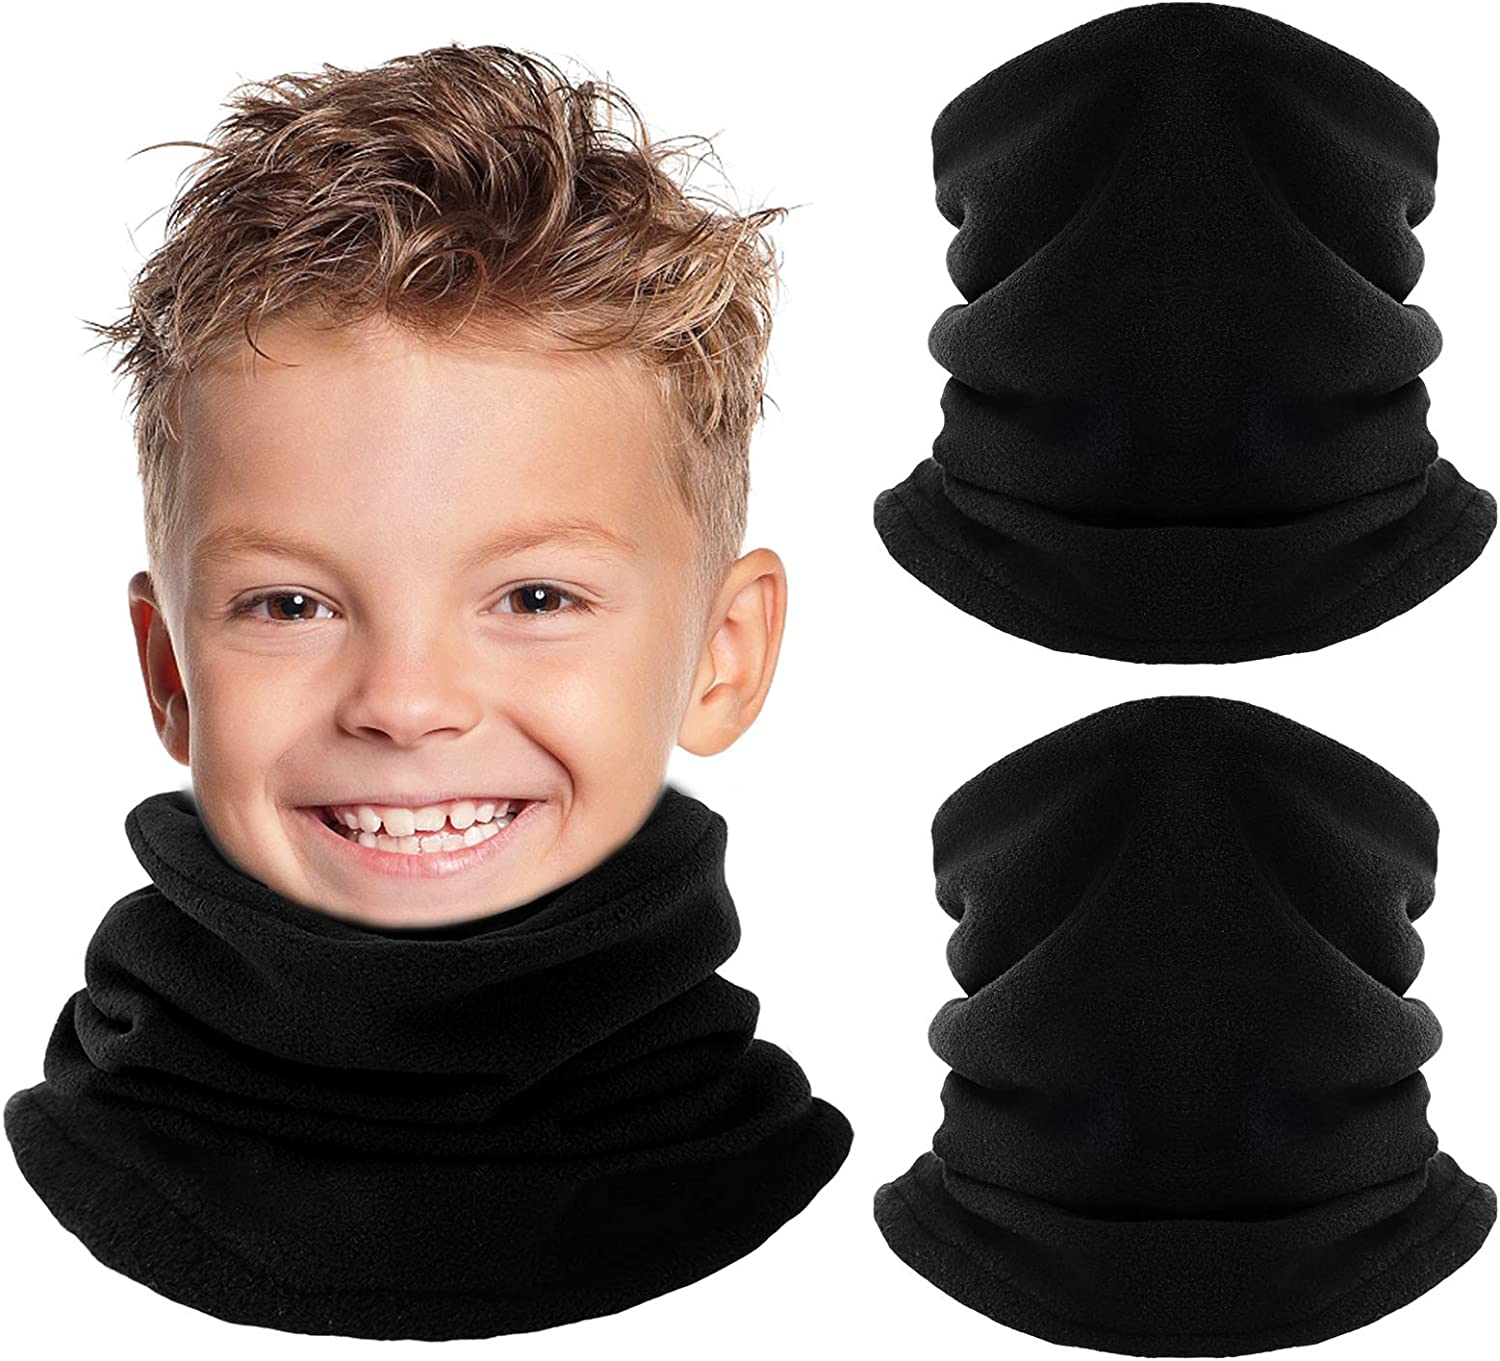 Kids Neck Warmer Gaiter Winter Fleece Snood Thermal Windproof Ski Tube Scarf for Cold Weather, Thick Face Mask for Girls&Boys Black (2 Pack)